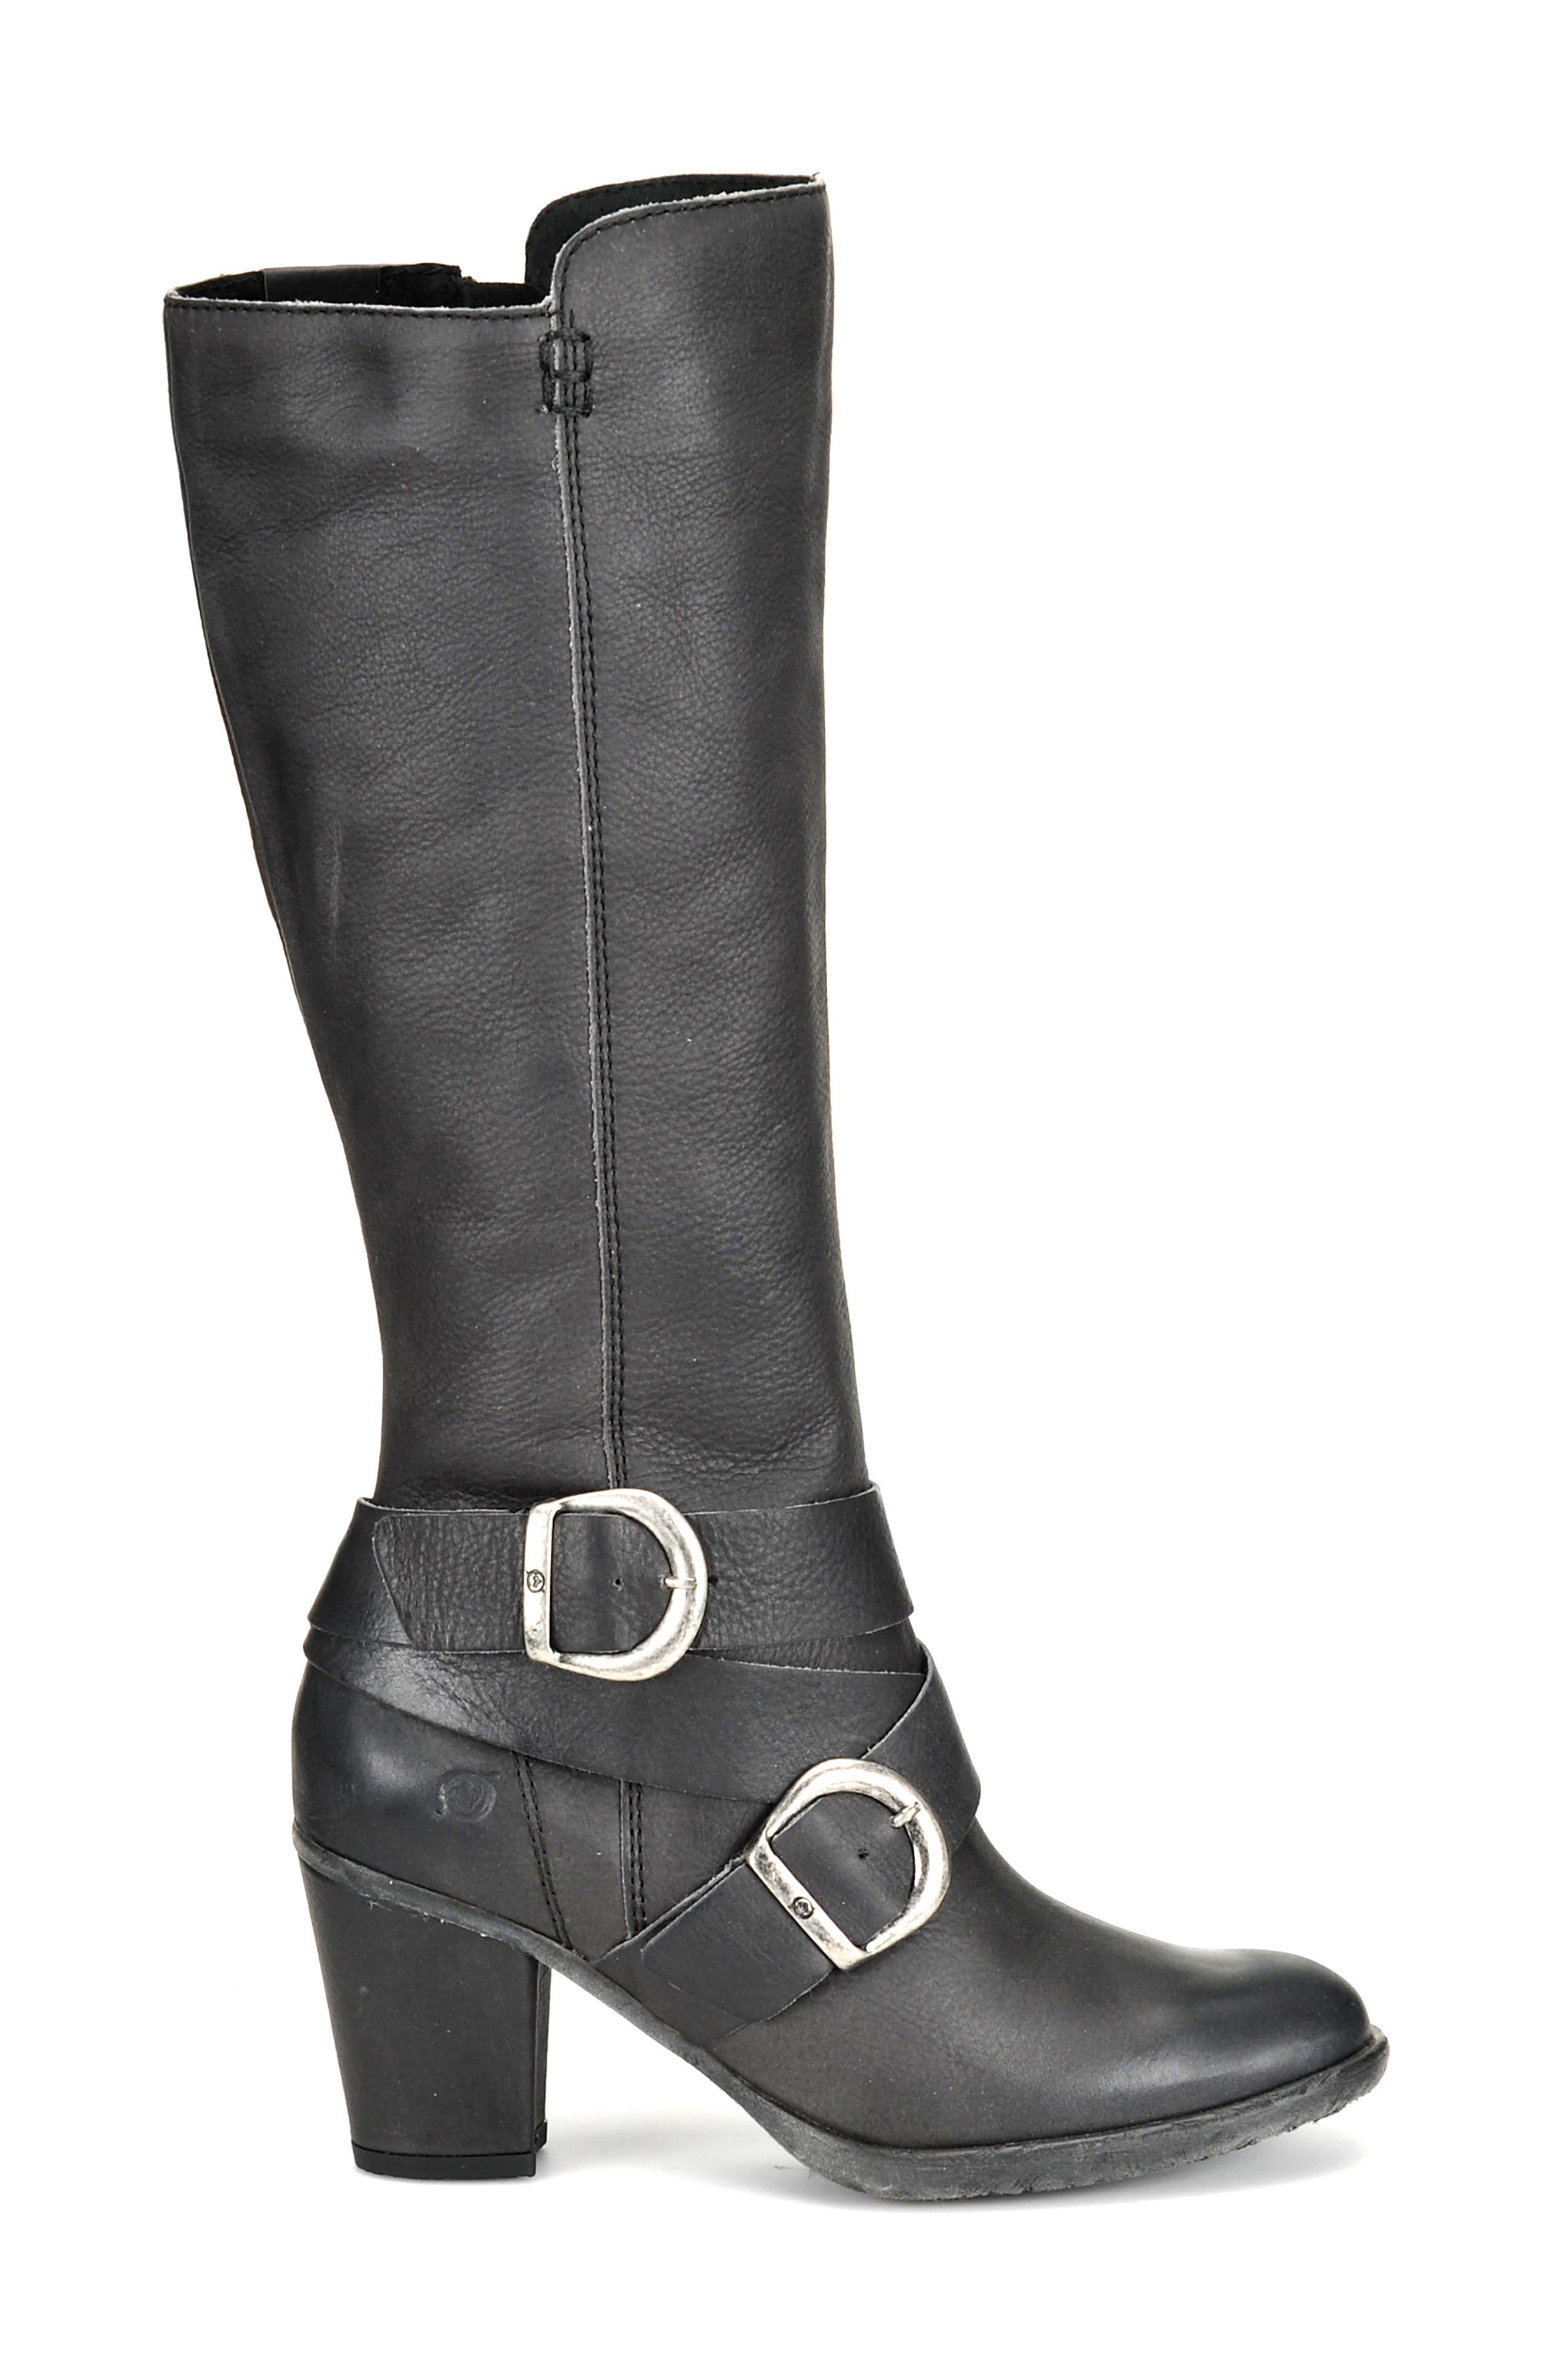 Cresent Knee High Boot,                             Alternate thumbnail 3, color,                             026